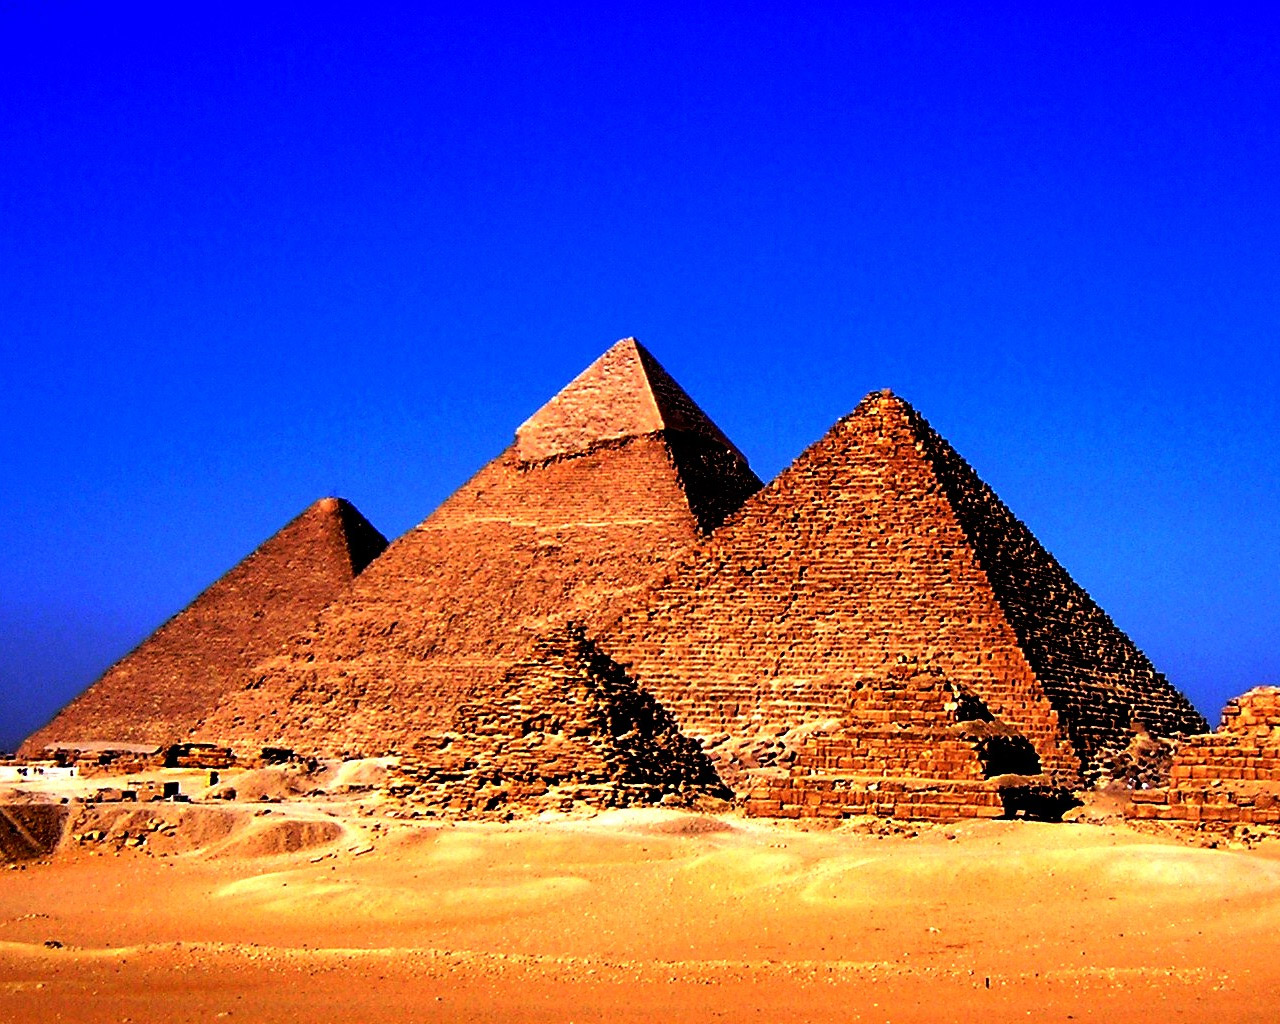 Egyptian Pyramids Wallpaper Free HD Backgrounds Images Pictures